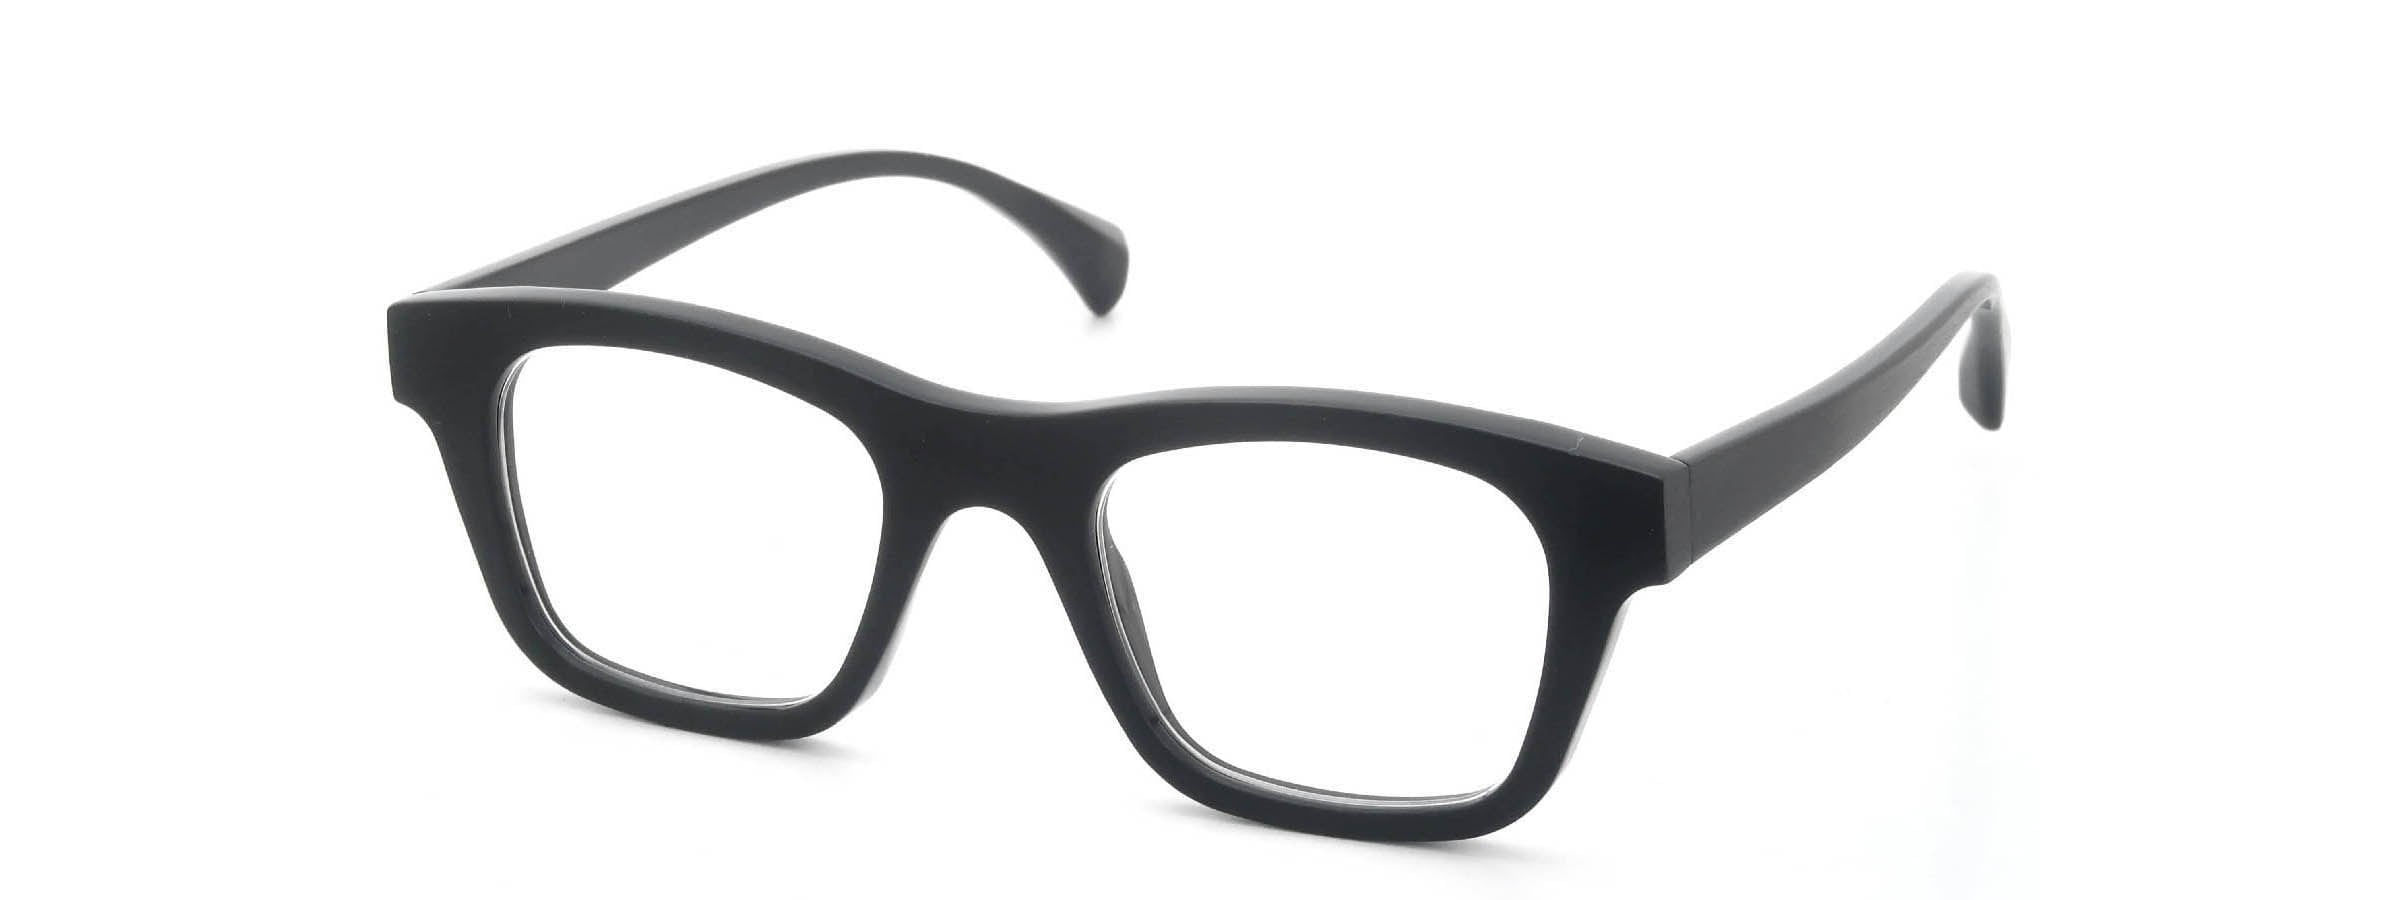 Jacques durand MADERE 101 col.002 HM-black全体像